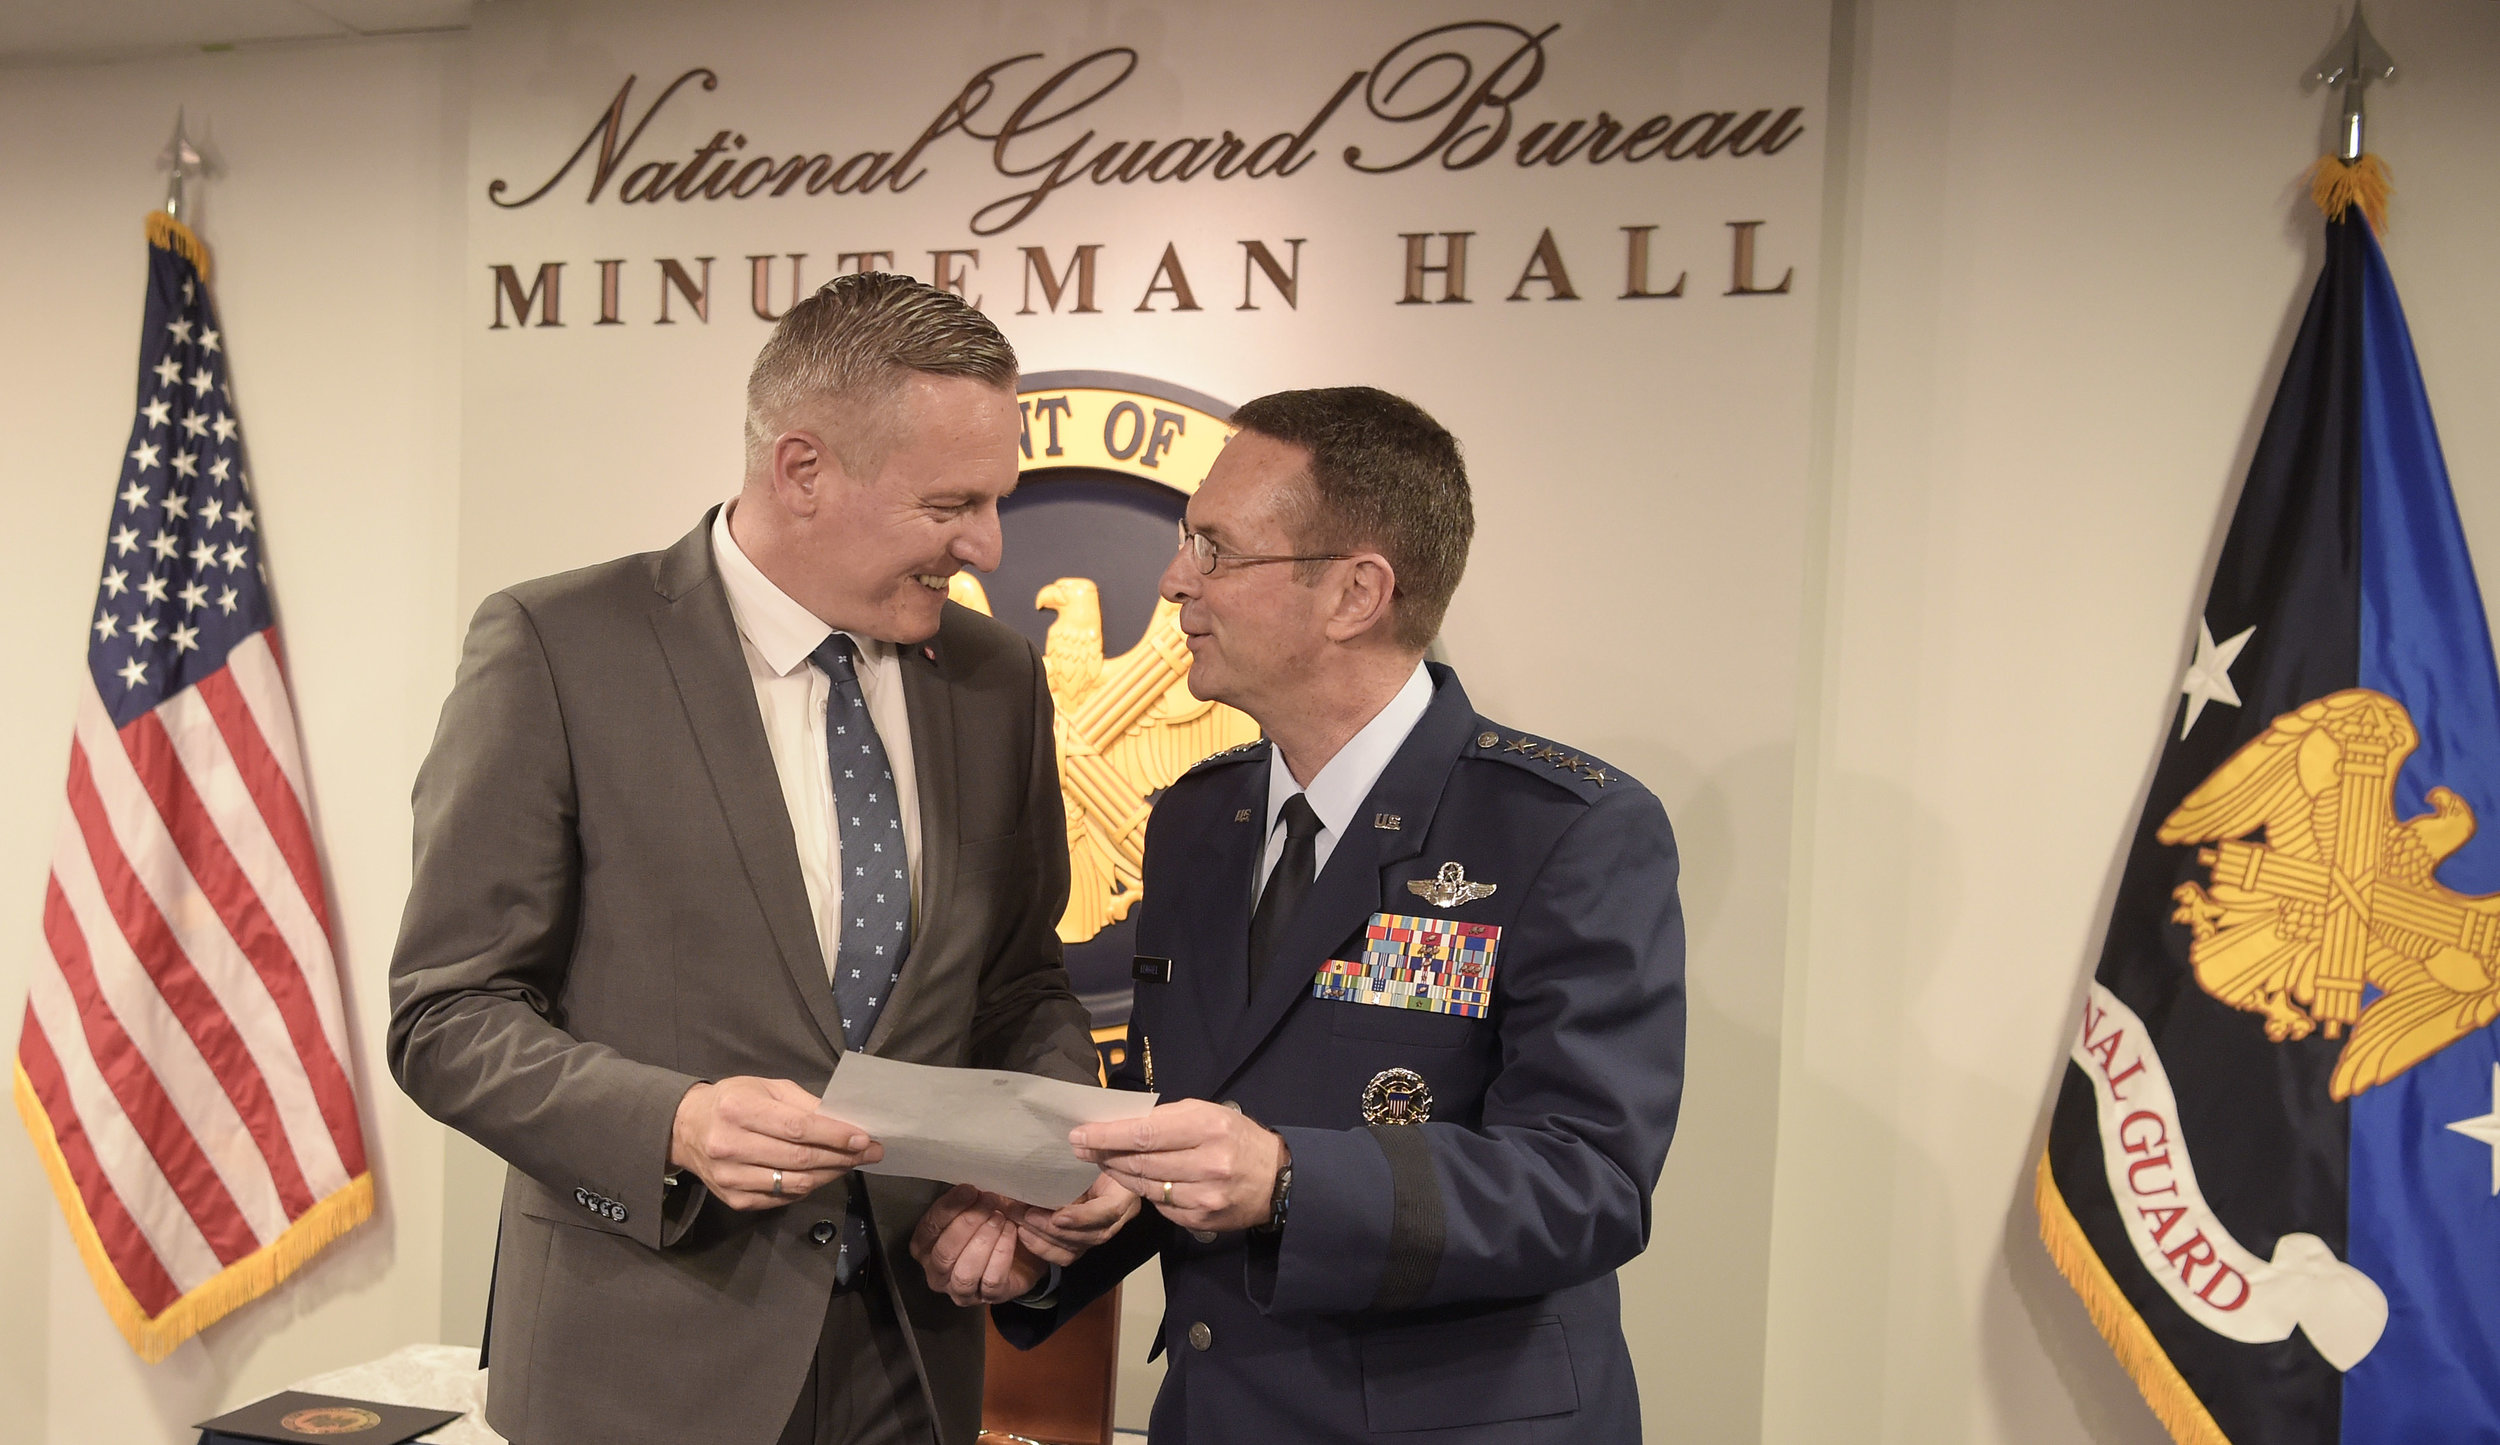 Defense Minister Mario Kunasek with General Joseph Lengyel, Chief of the National Guard Bureau